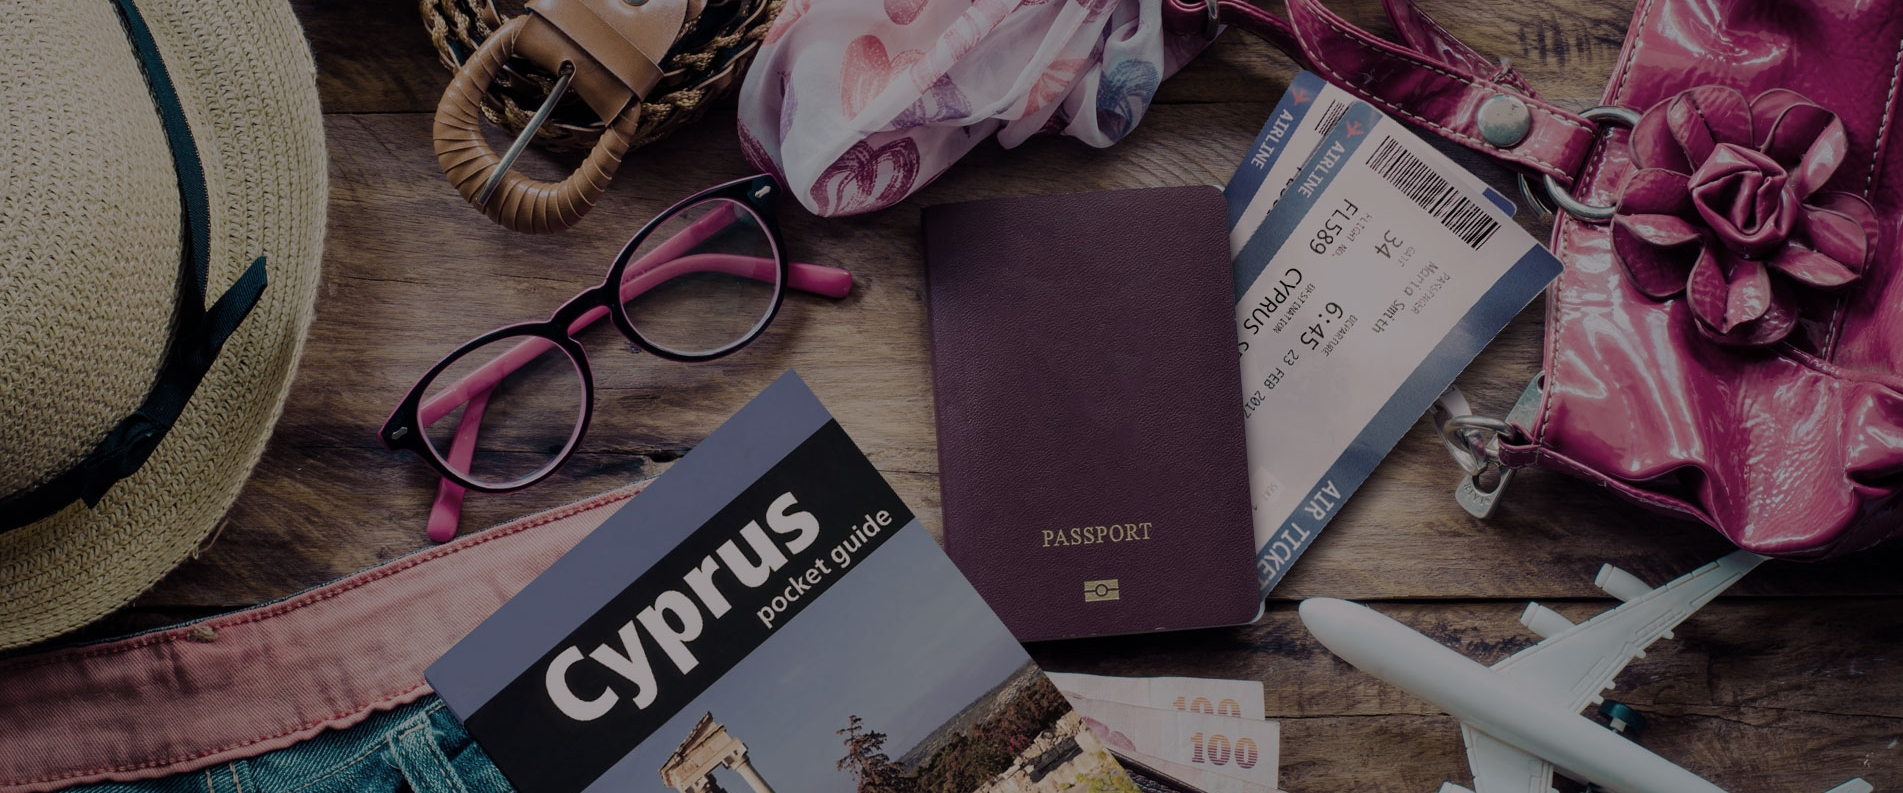 What do you need to know when going to Cyprus?